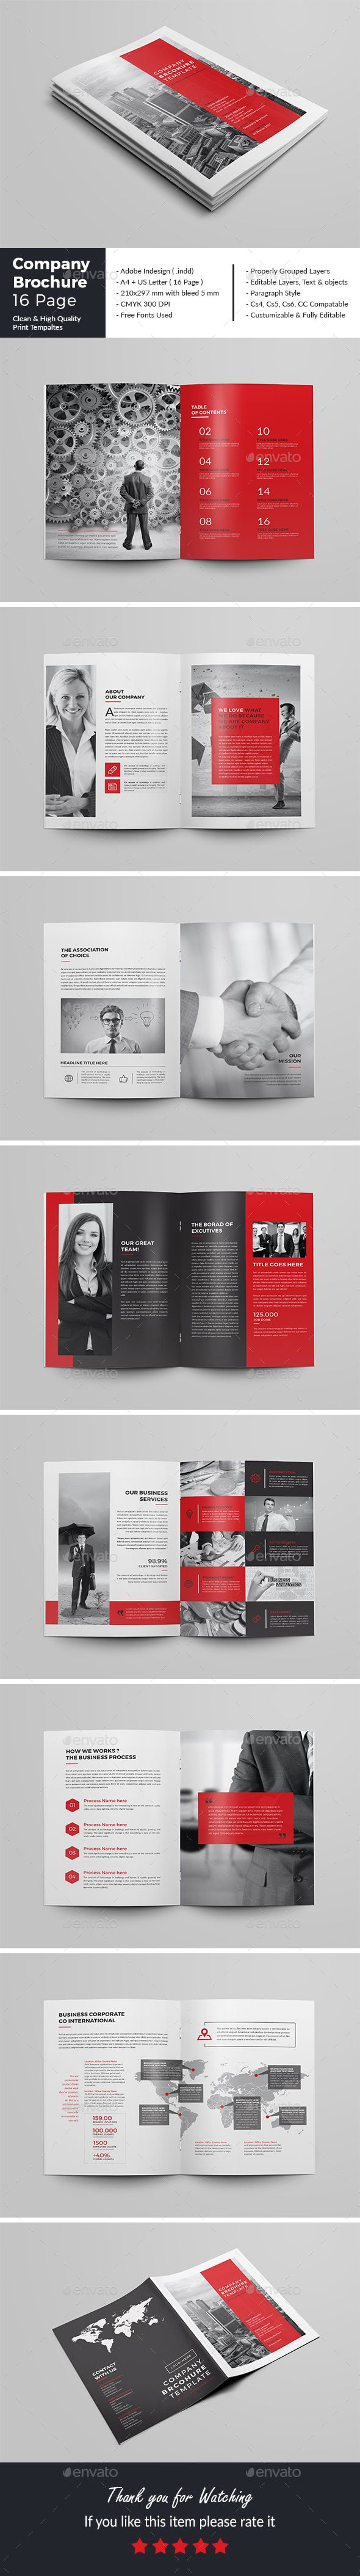 Company Brochure Template 16 Page — InDesign INDD #clean #minimal • Download ➝ https://graphicriver.net/item/company-brochure-template-16-page/19571557?ref=pxcr